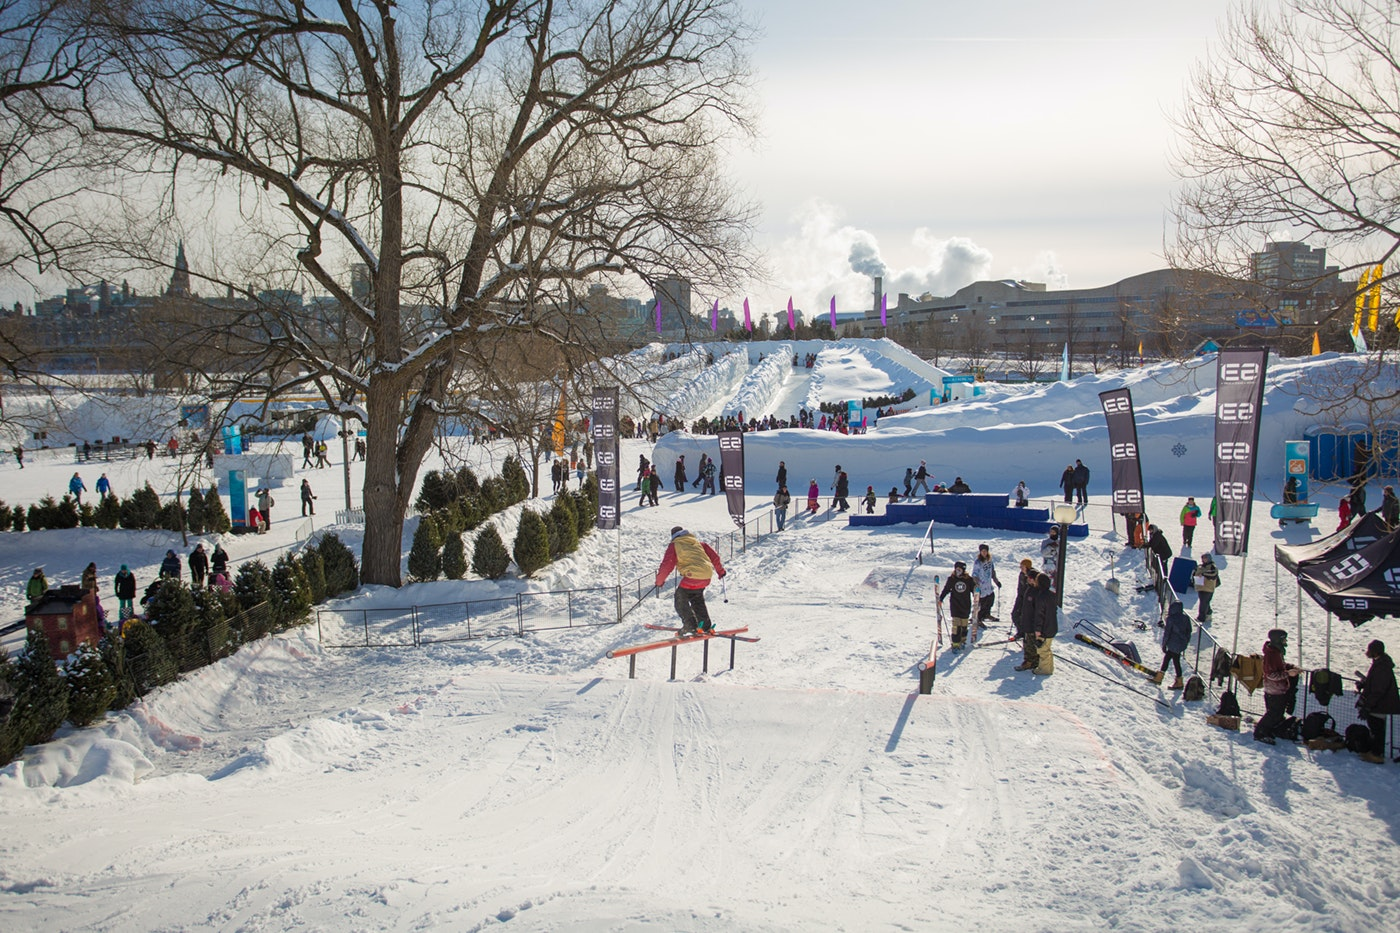 Ottawa attracts huge crowds for its Winterlude, which offers every winter activity you can think of (and then some).